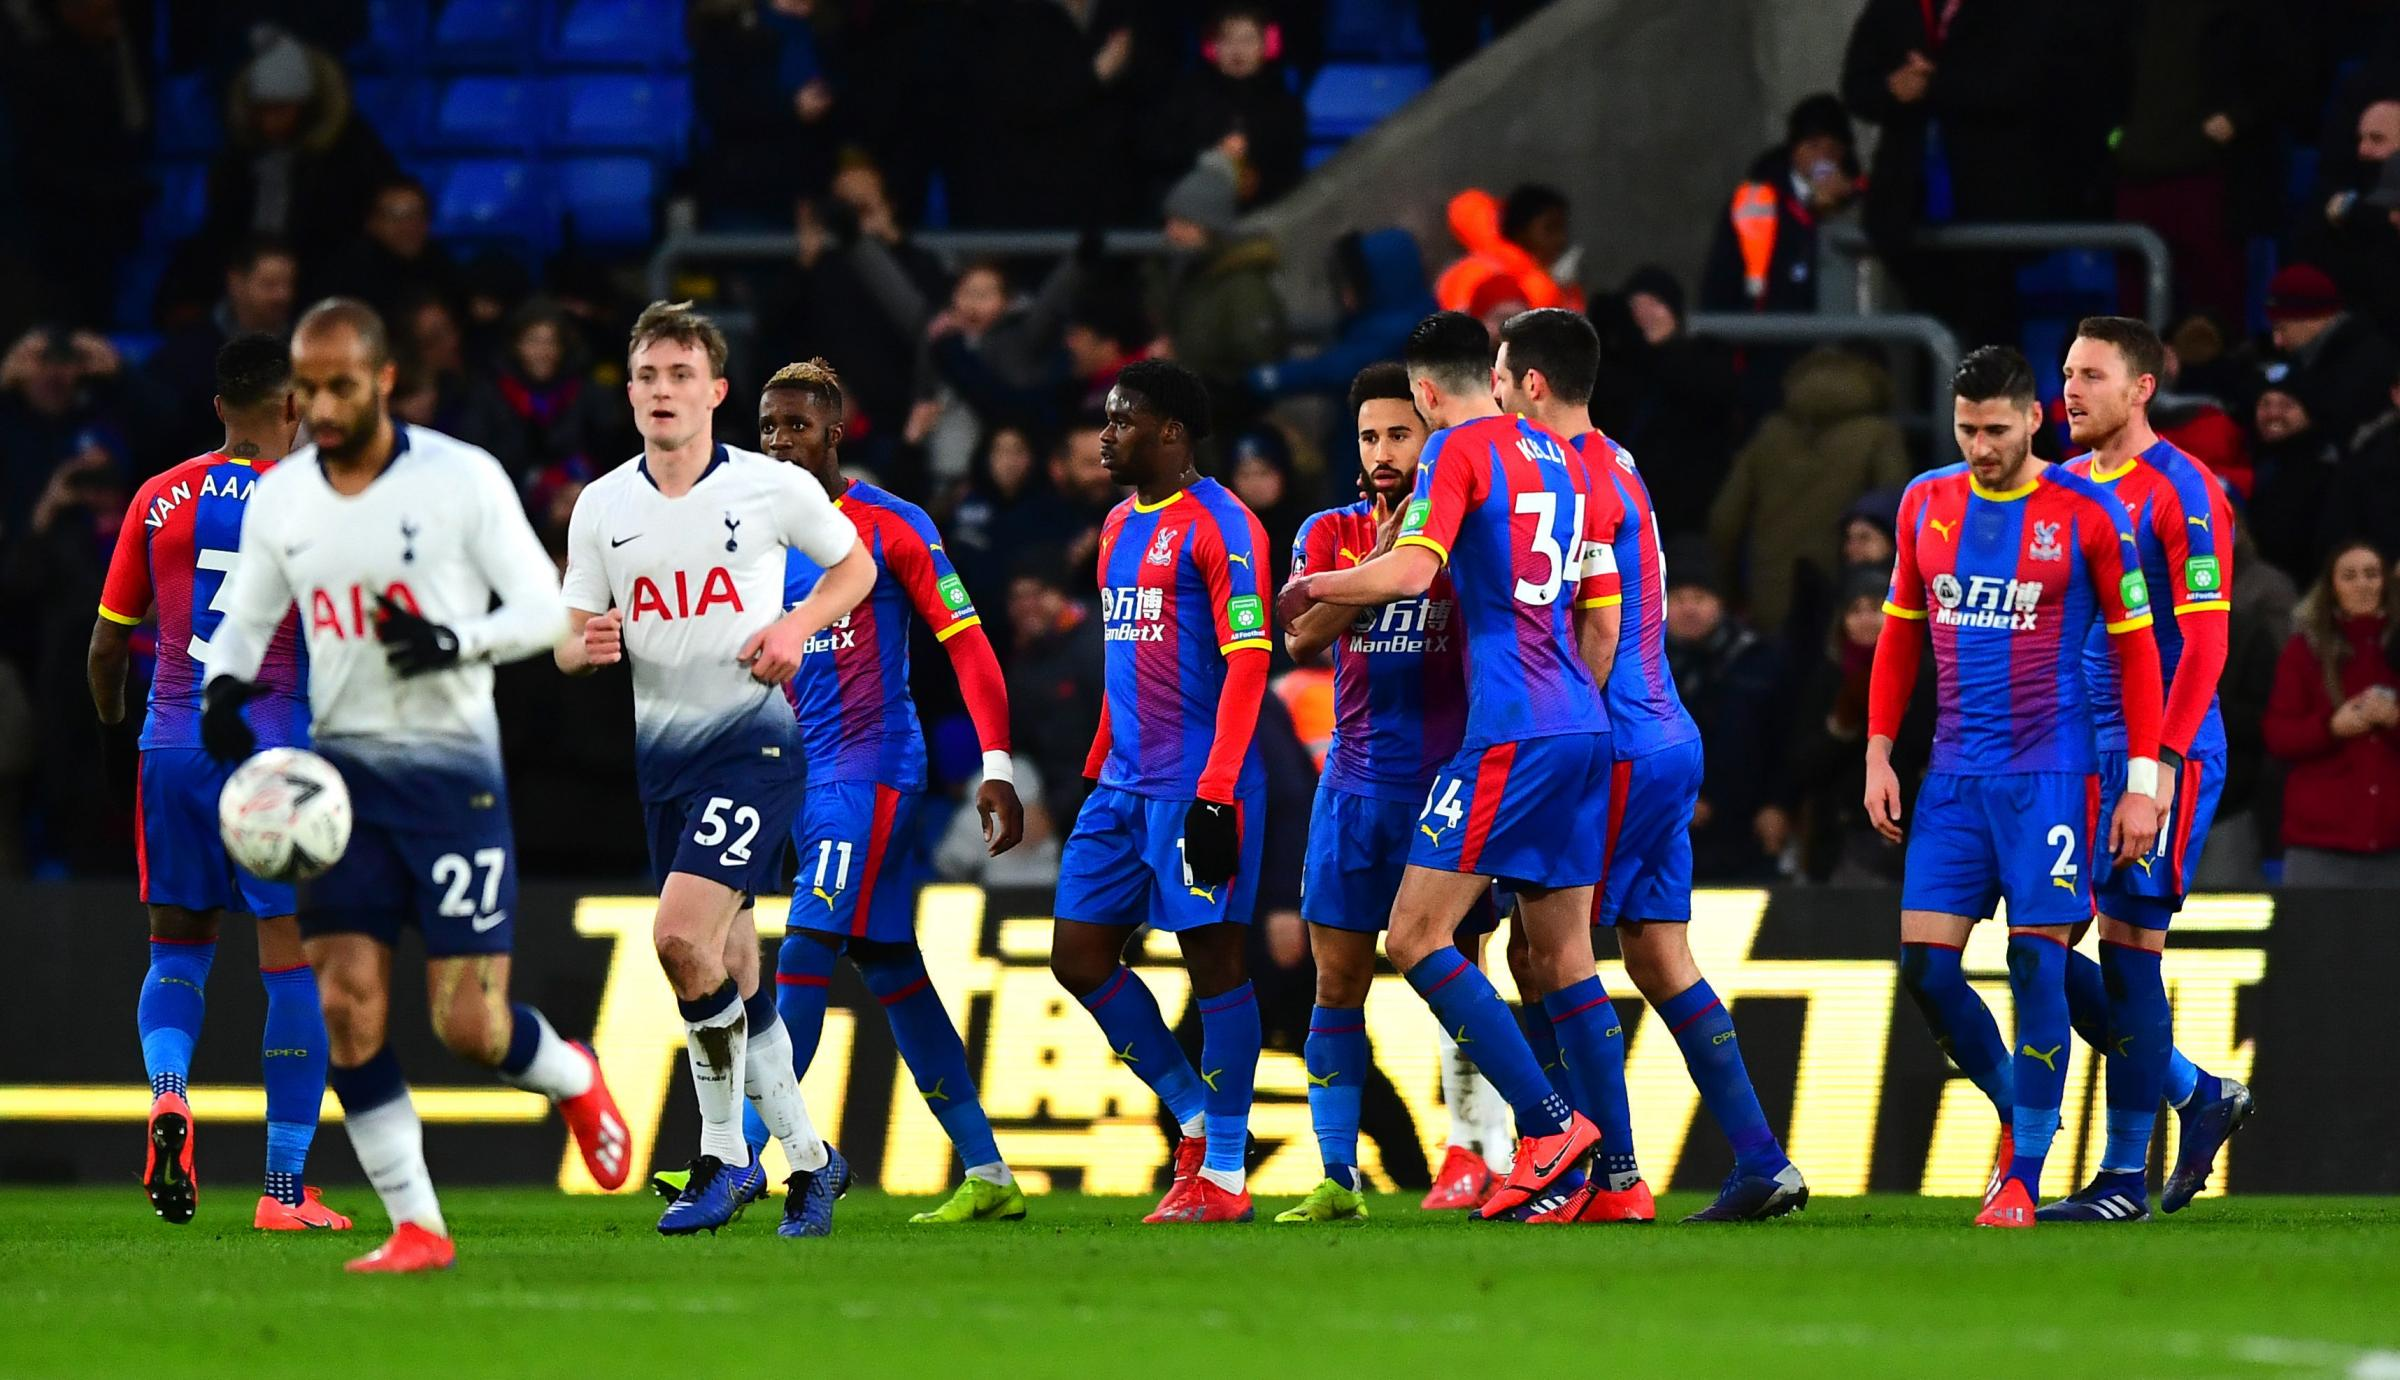 Jeffrey Schlupp (centre) celebrates Andros Townsends goal against Spurs in a FA Cup match in 2019 (PA)